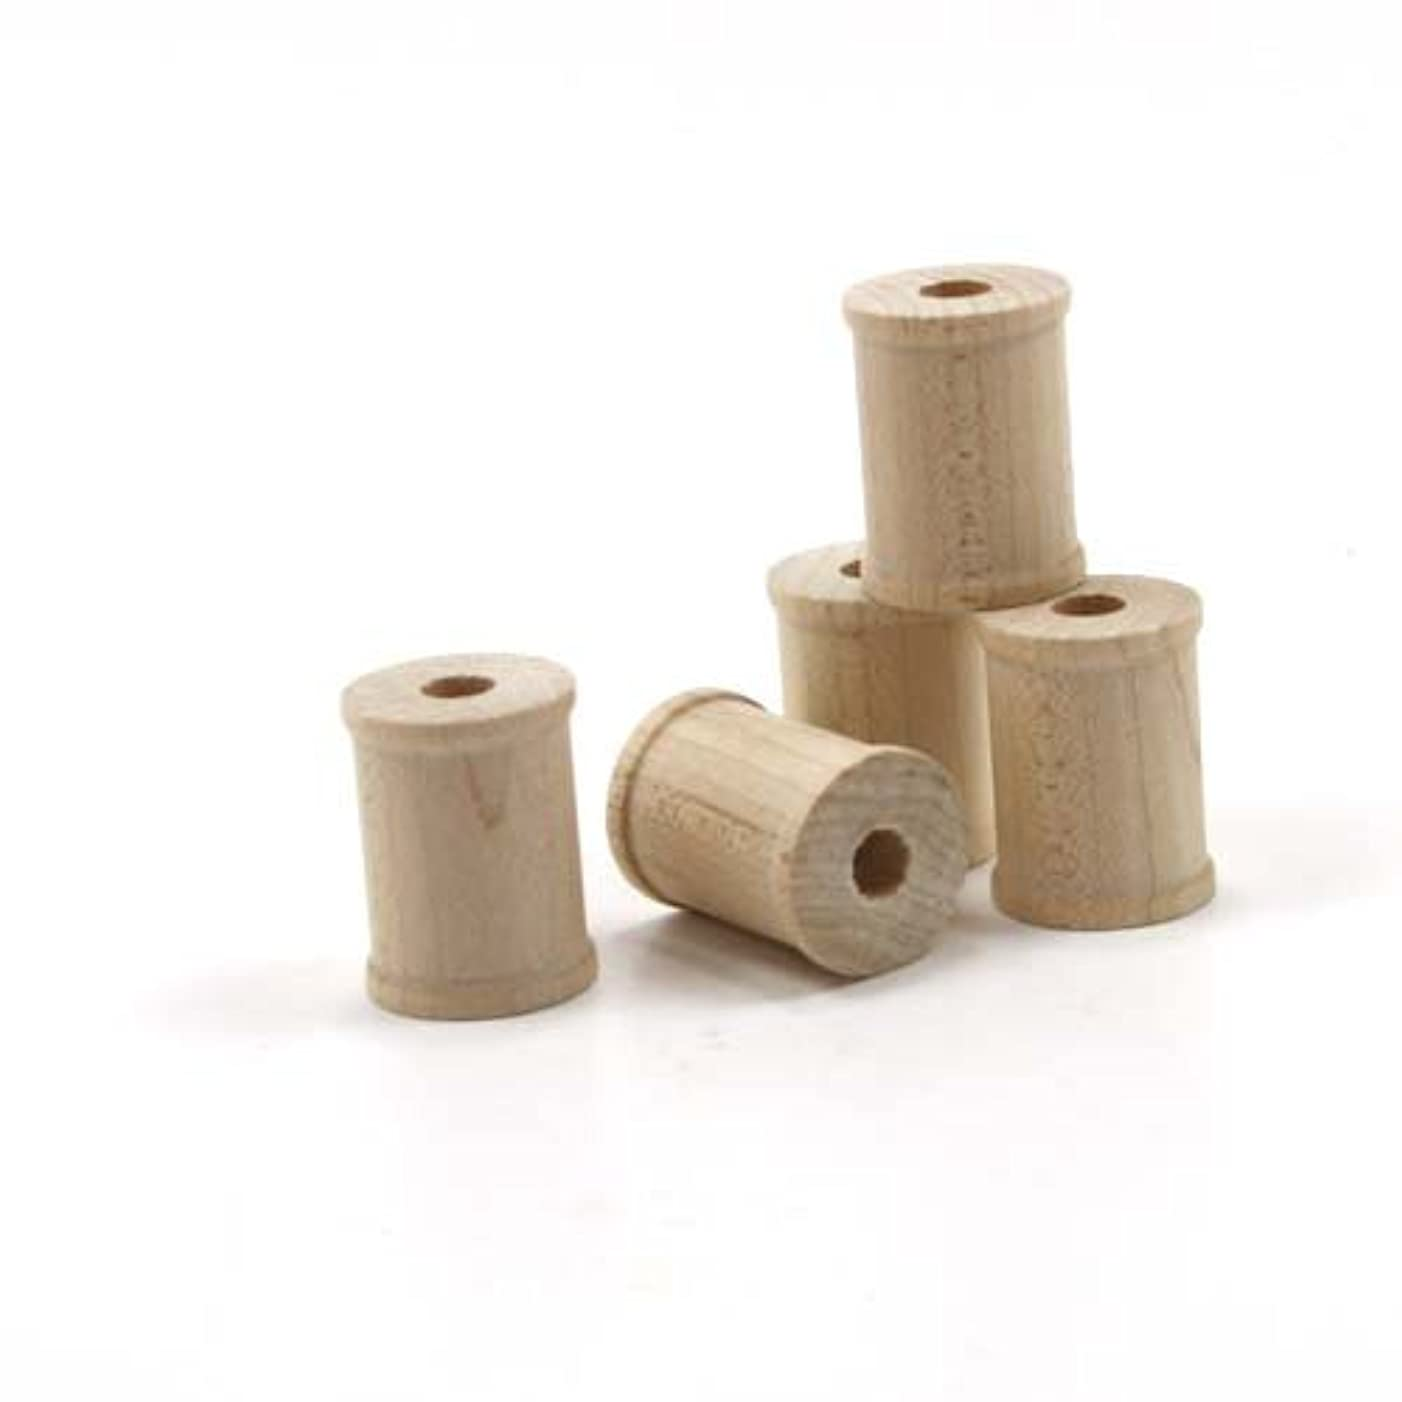 Mylittlewoodshop - Pkg of 25 - Spool - 3/4 inches tall and 5/8 inches wide with 7/32 hole unfinished wood(WW-SP6000-26)